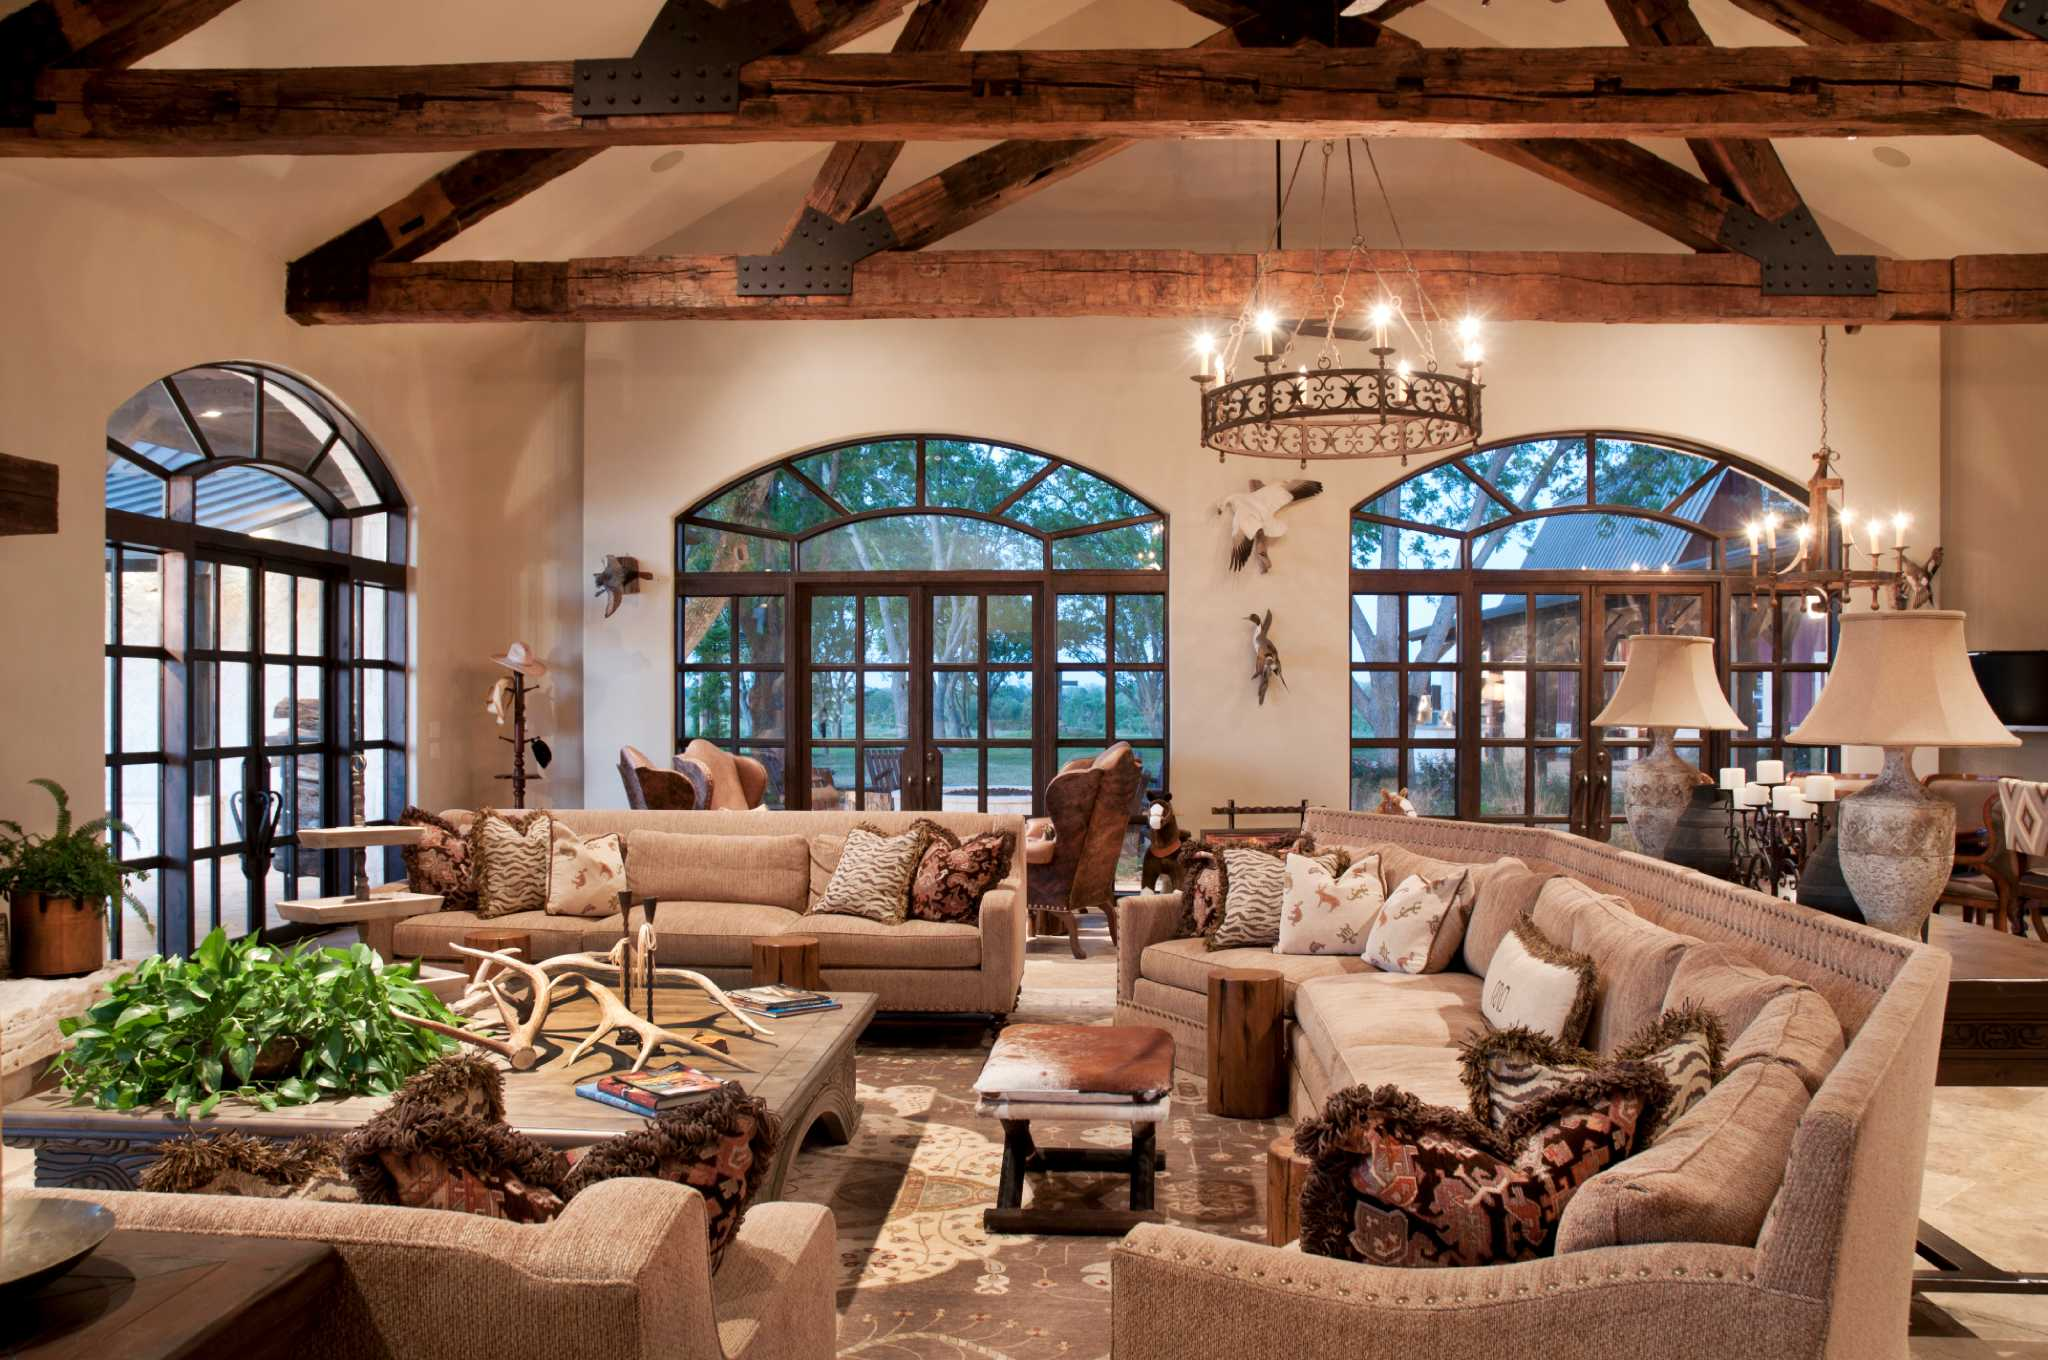 Take a tour of the texas sized ranch owned by a prominent for Texas ranch homes